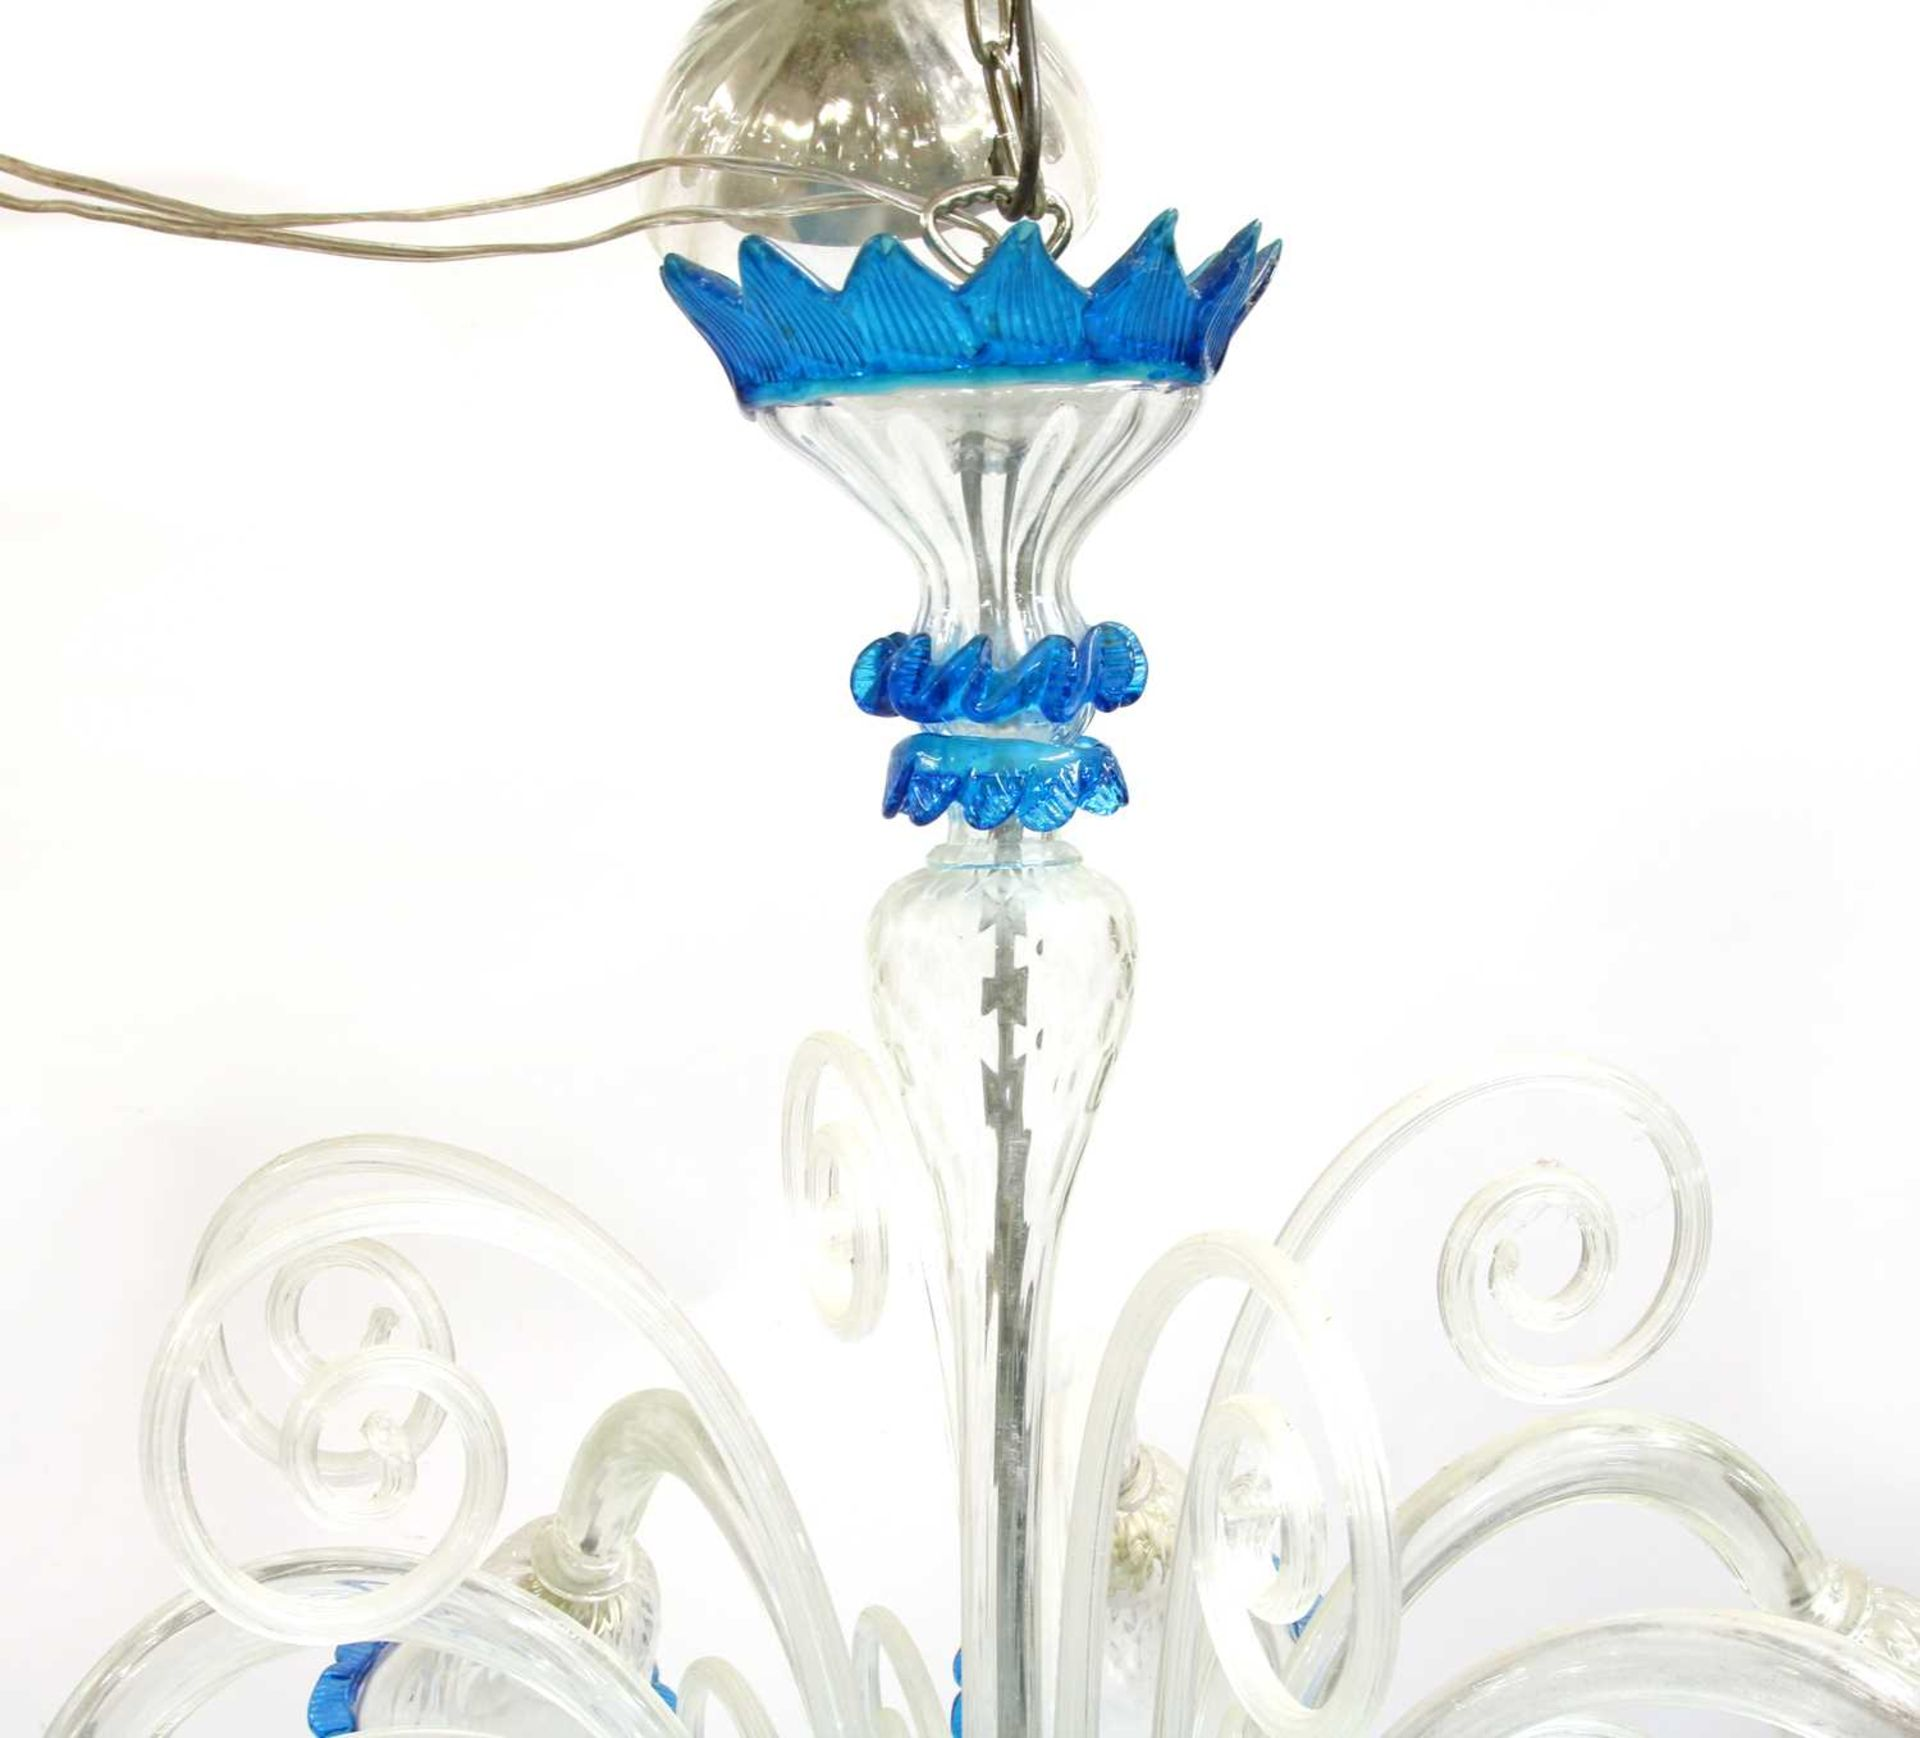 A Murano glass chandelier, - Image 2 of 5